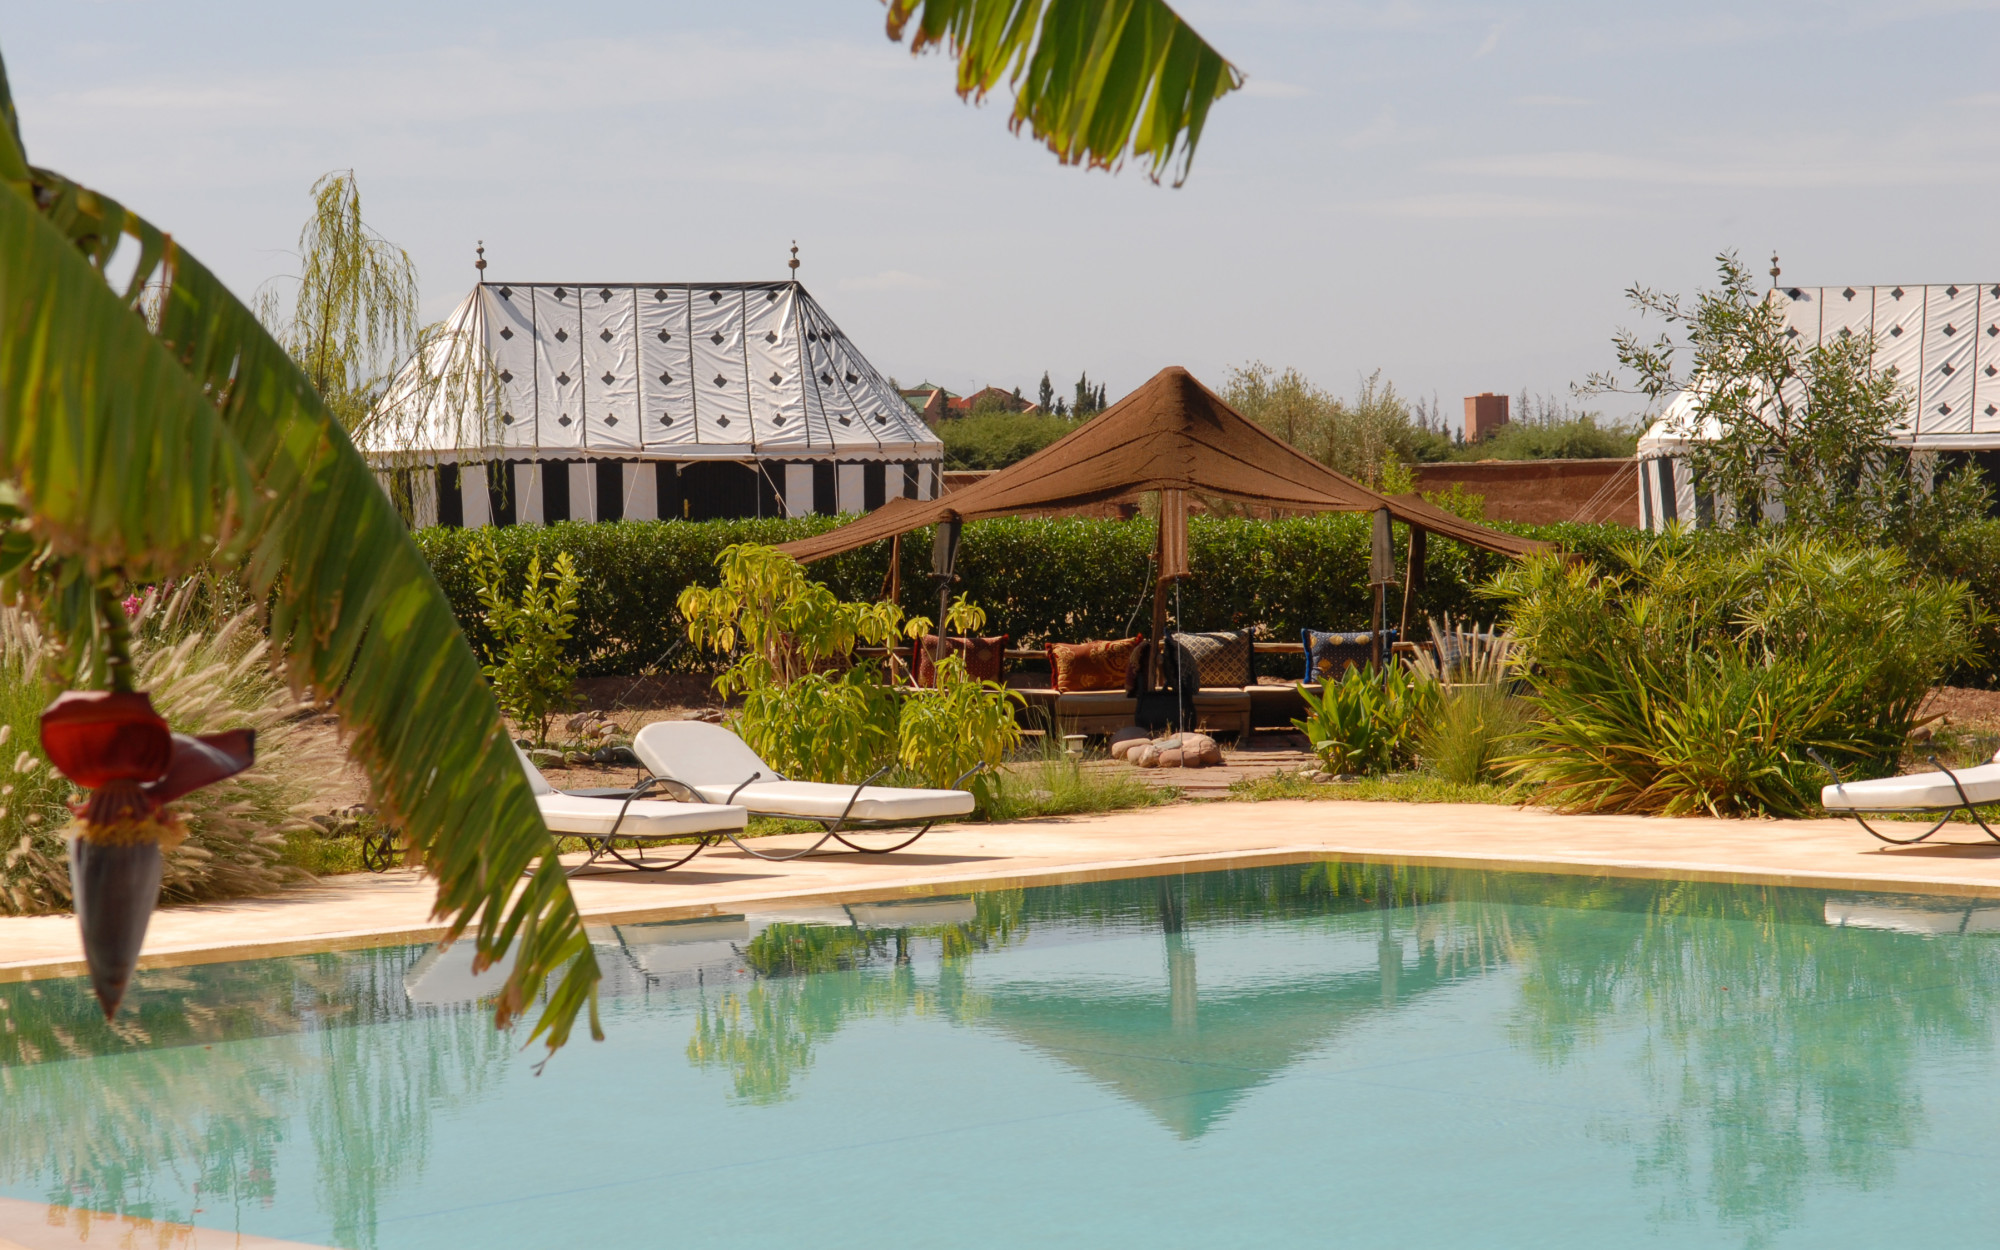 Luxury tents at Jardins d'Issil